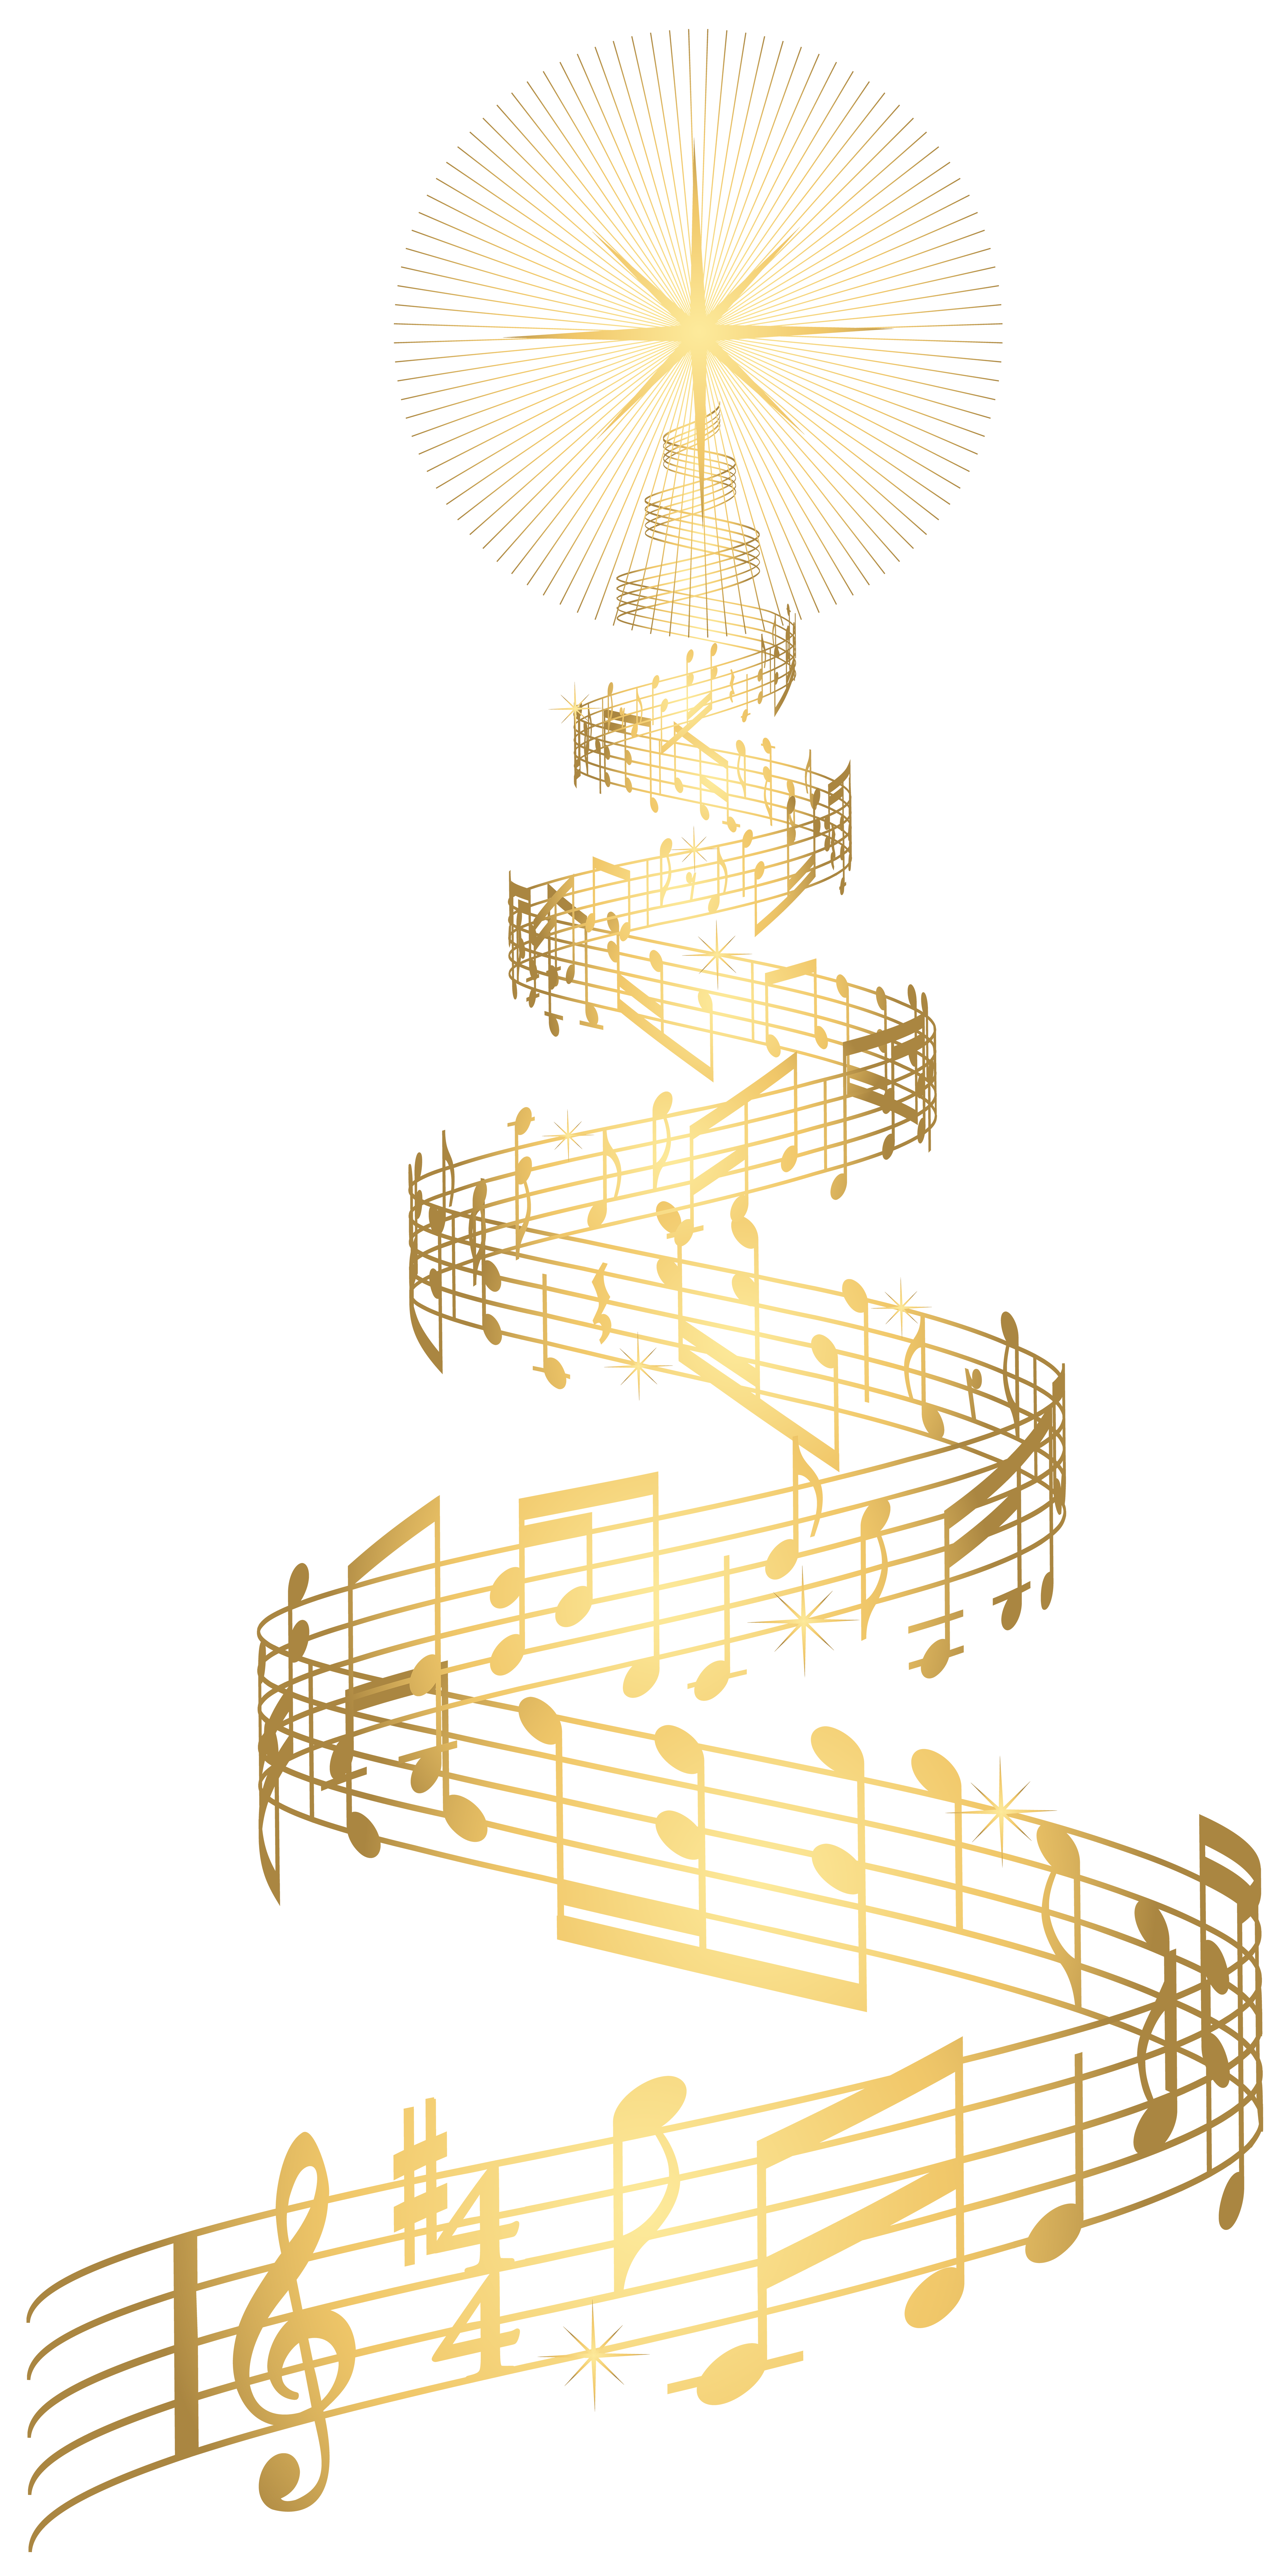 Christmas music clipart freeuse library Golden Music Christmas Tree Transparent PNG Clip Art Image ... freeuse library